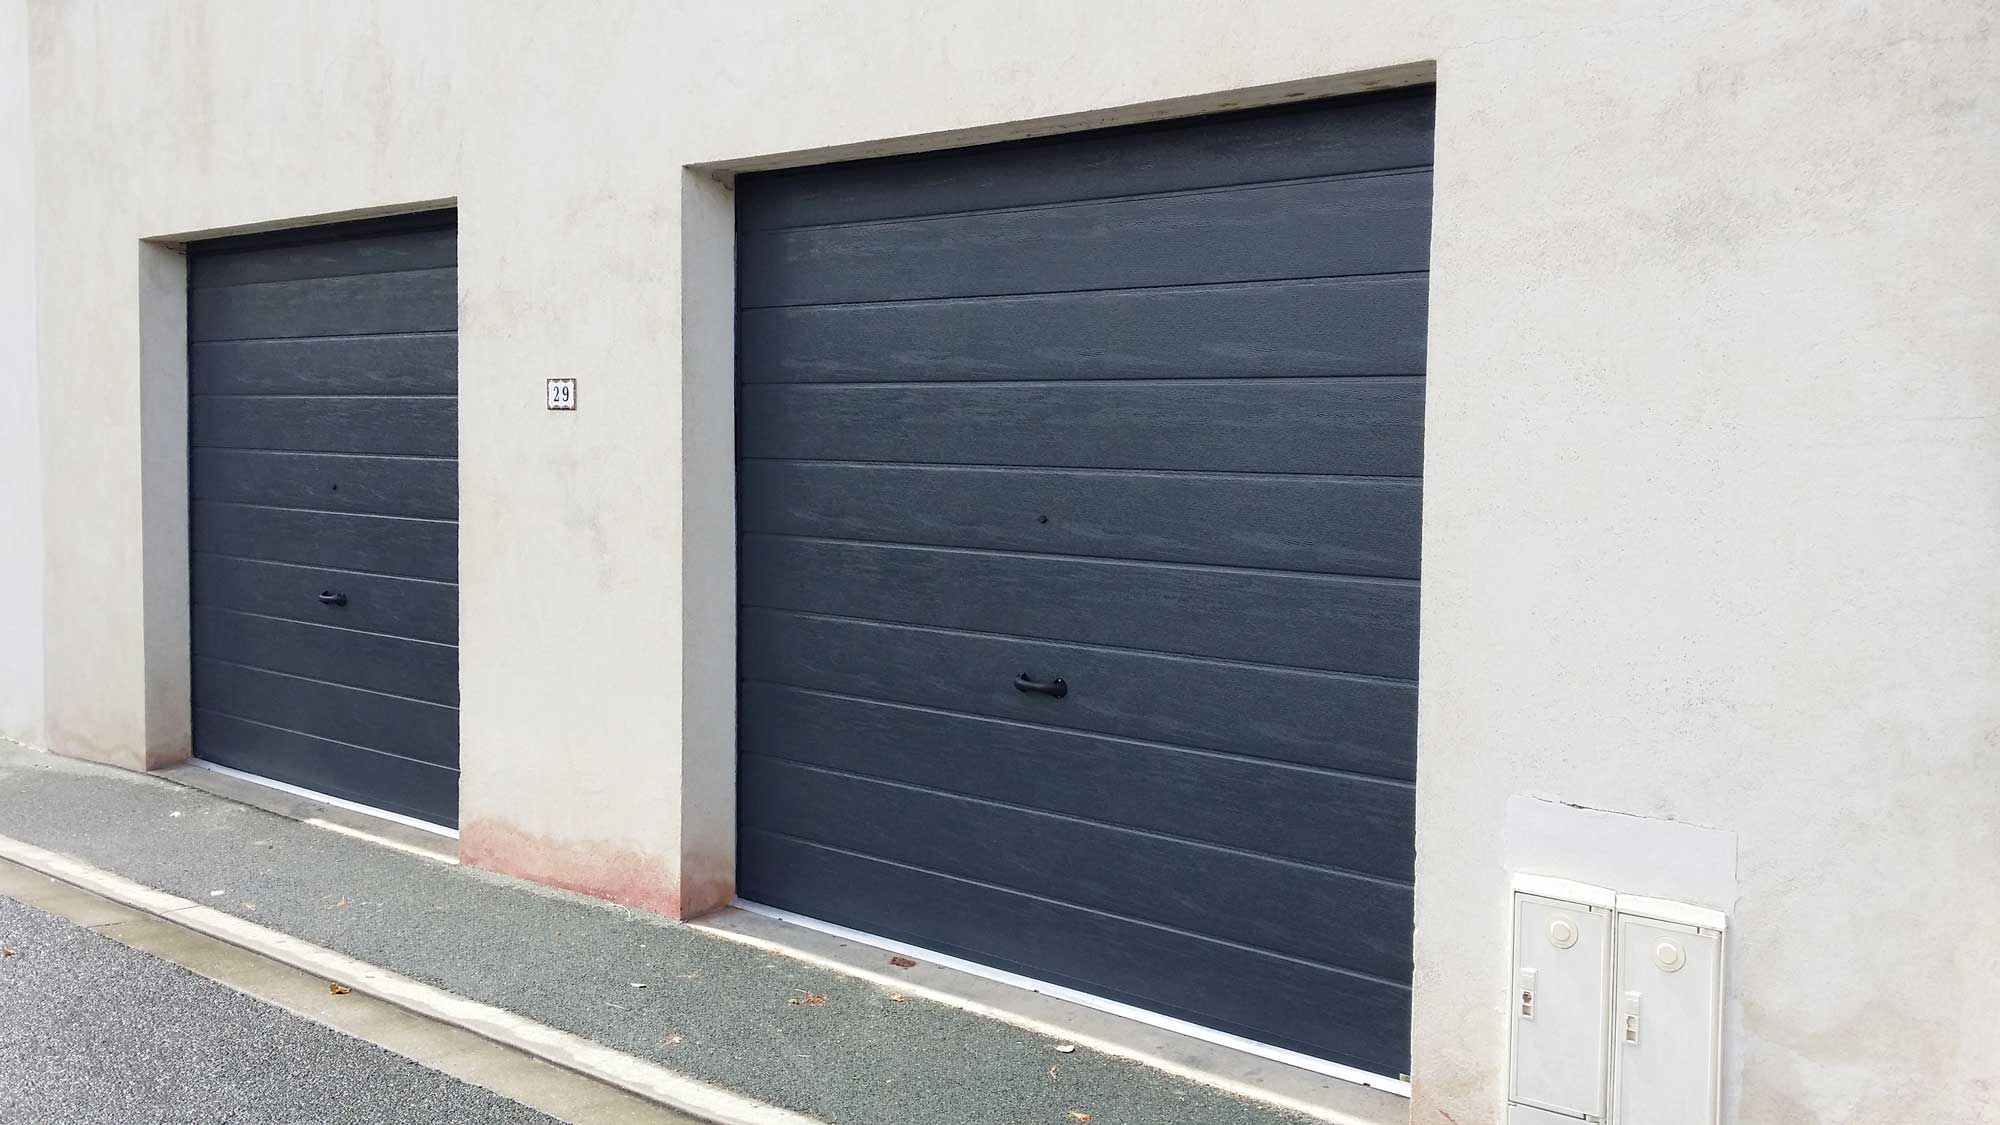 Pose de portes de garage sectionnelle 7016 sur mesure par for Porte de garage installation